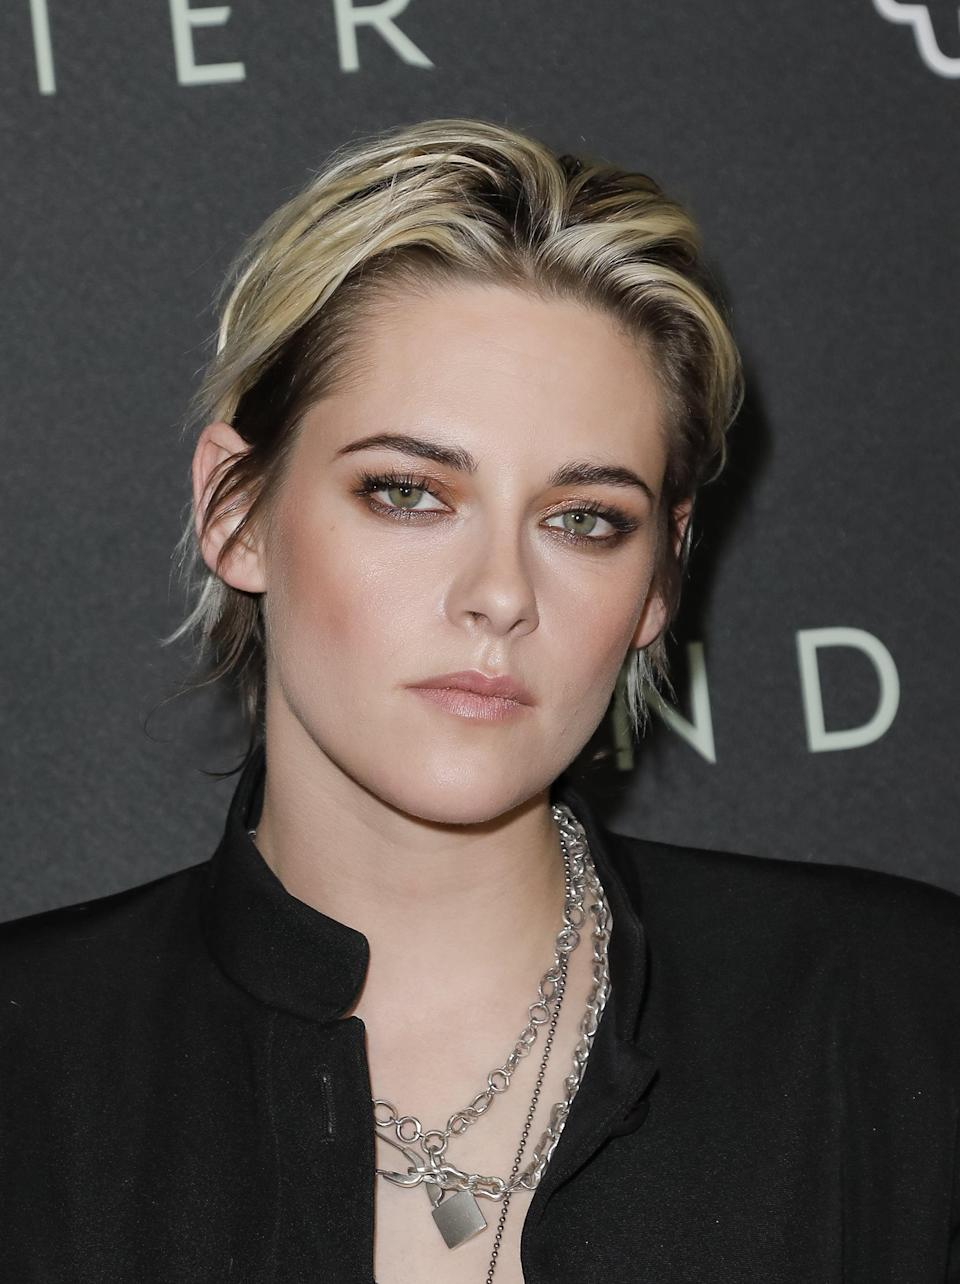 LOS ANGELES, CALIFORNIA - JANUARY 07: Kristen Stewart attends a special fan screening of 20th Century Fox's